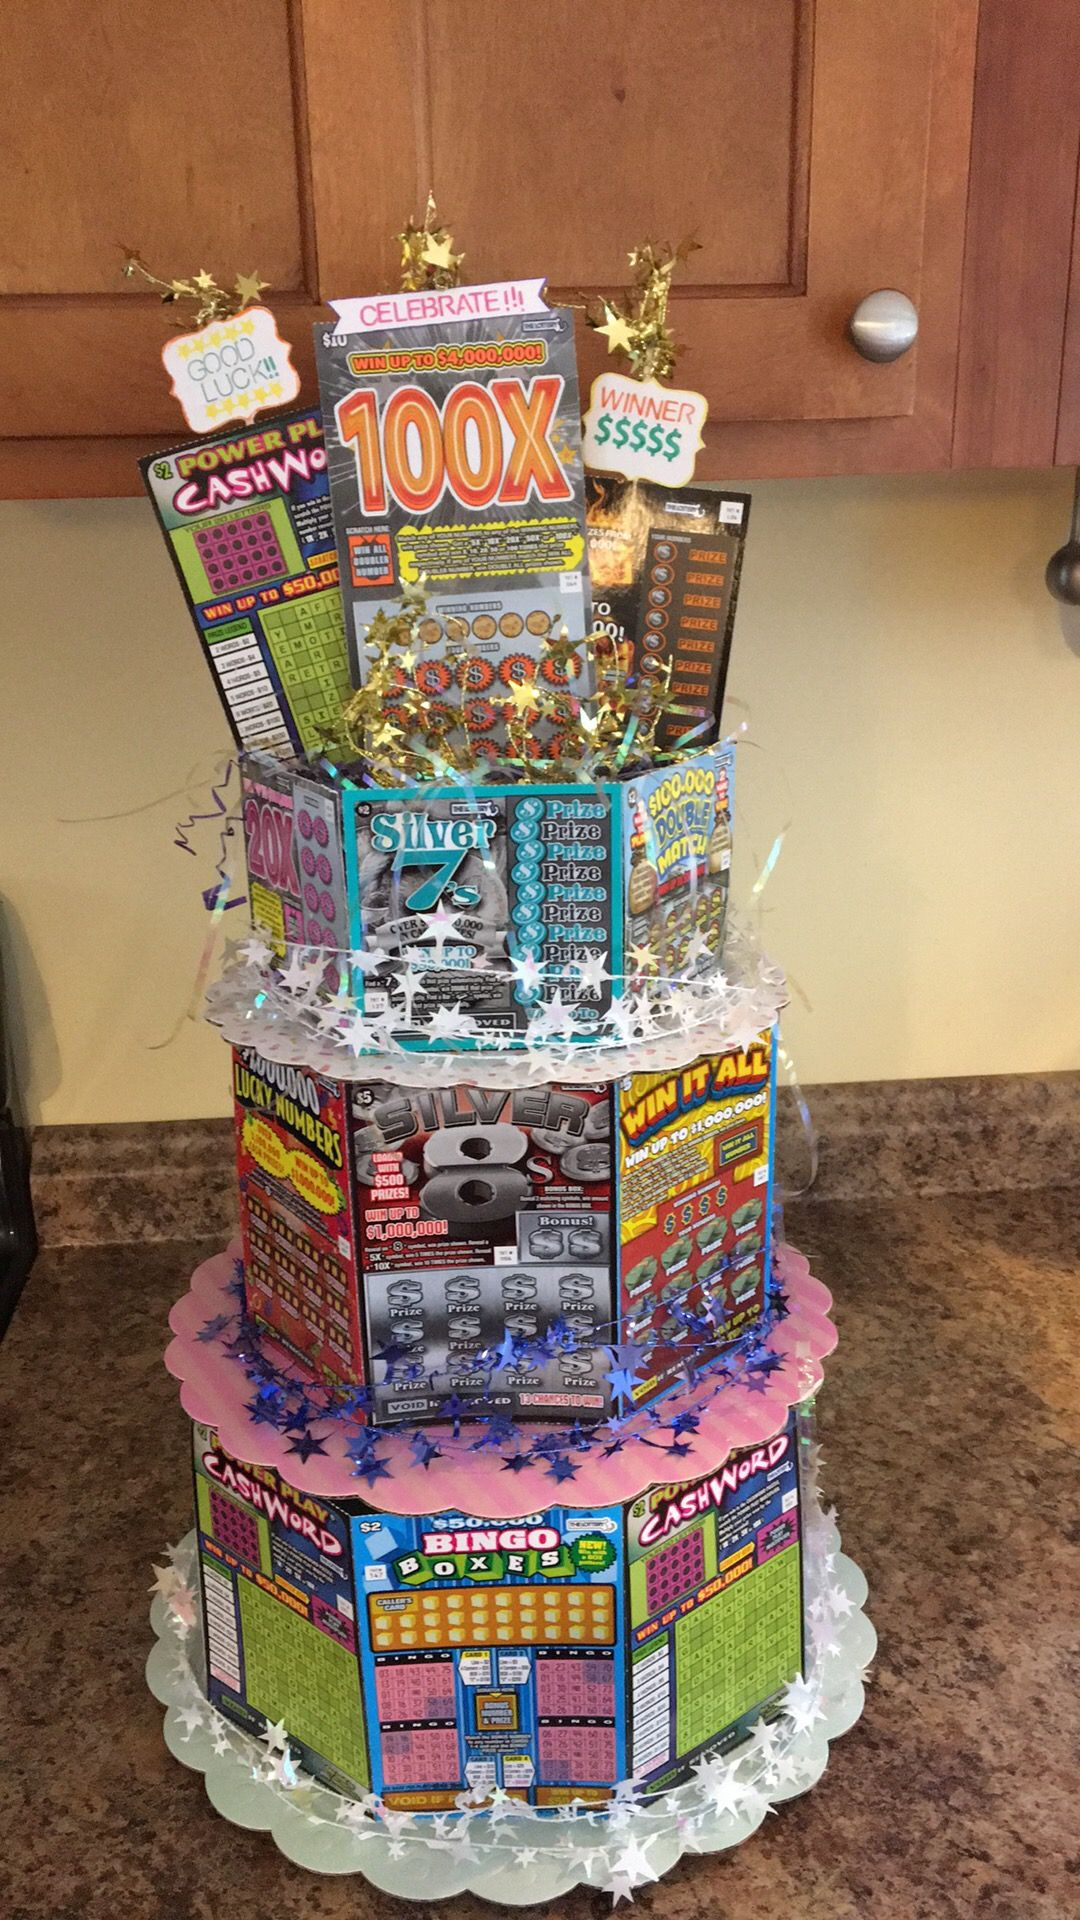 Lottery Ticket Cake For A Jack And Jill Raffle Creative Money Gifts Lottery Ticket Gift Birthday Gifts